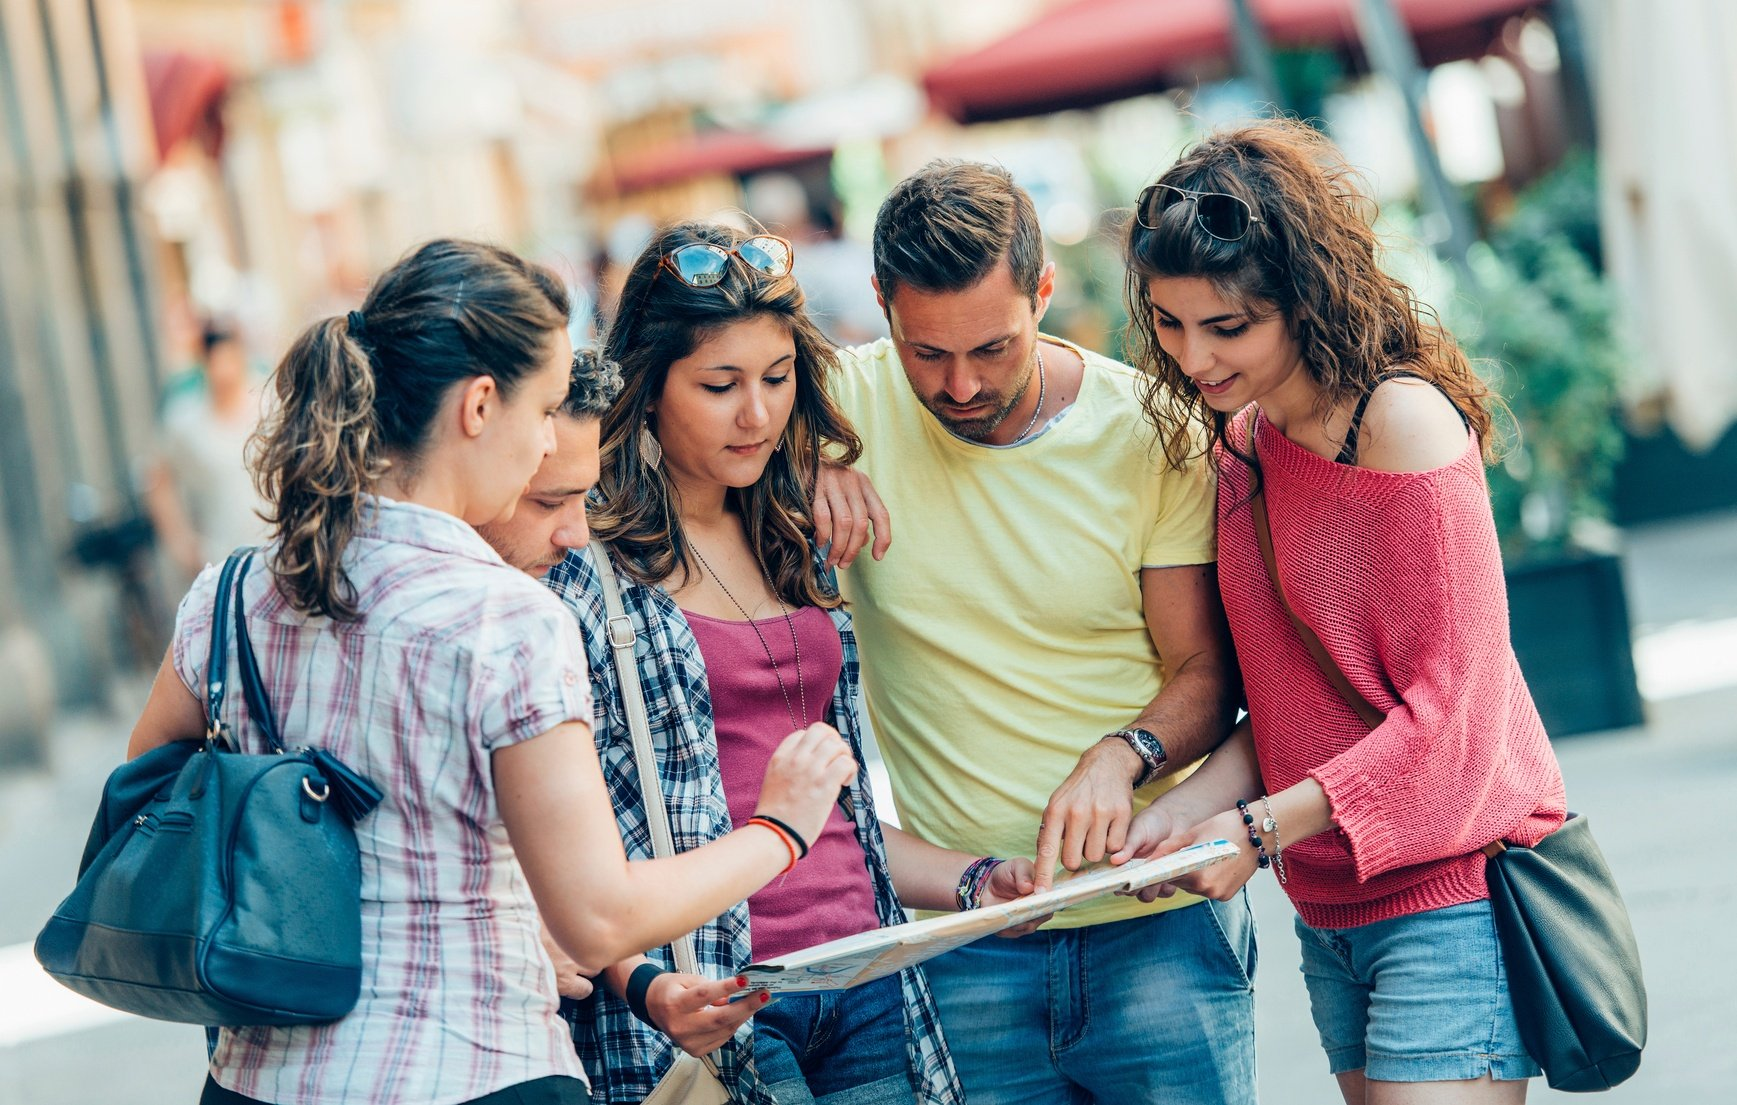 group-of-tourists-using-map-in-the-city-000092262985_Medium.jpg